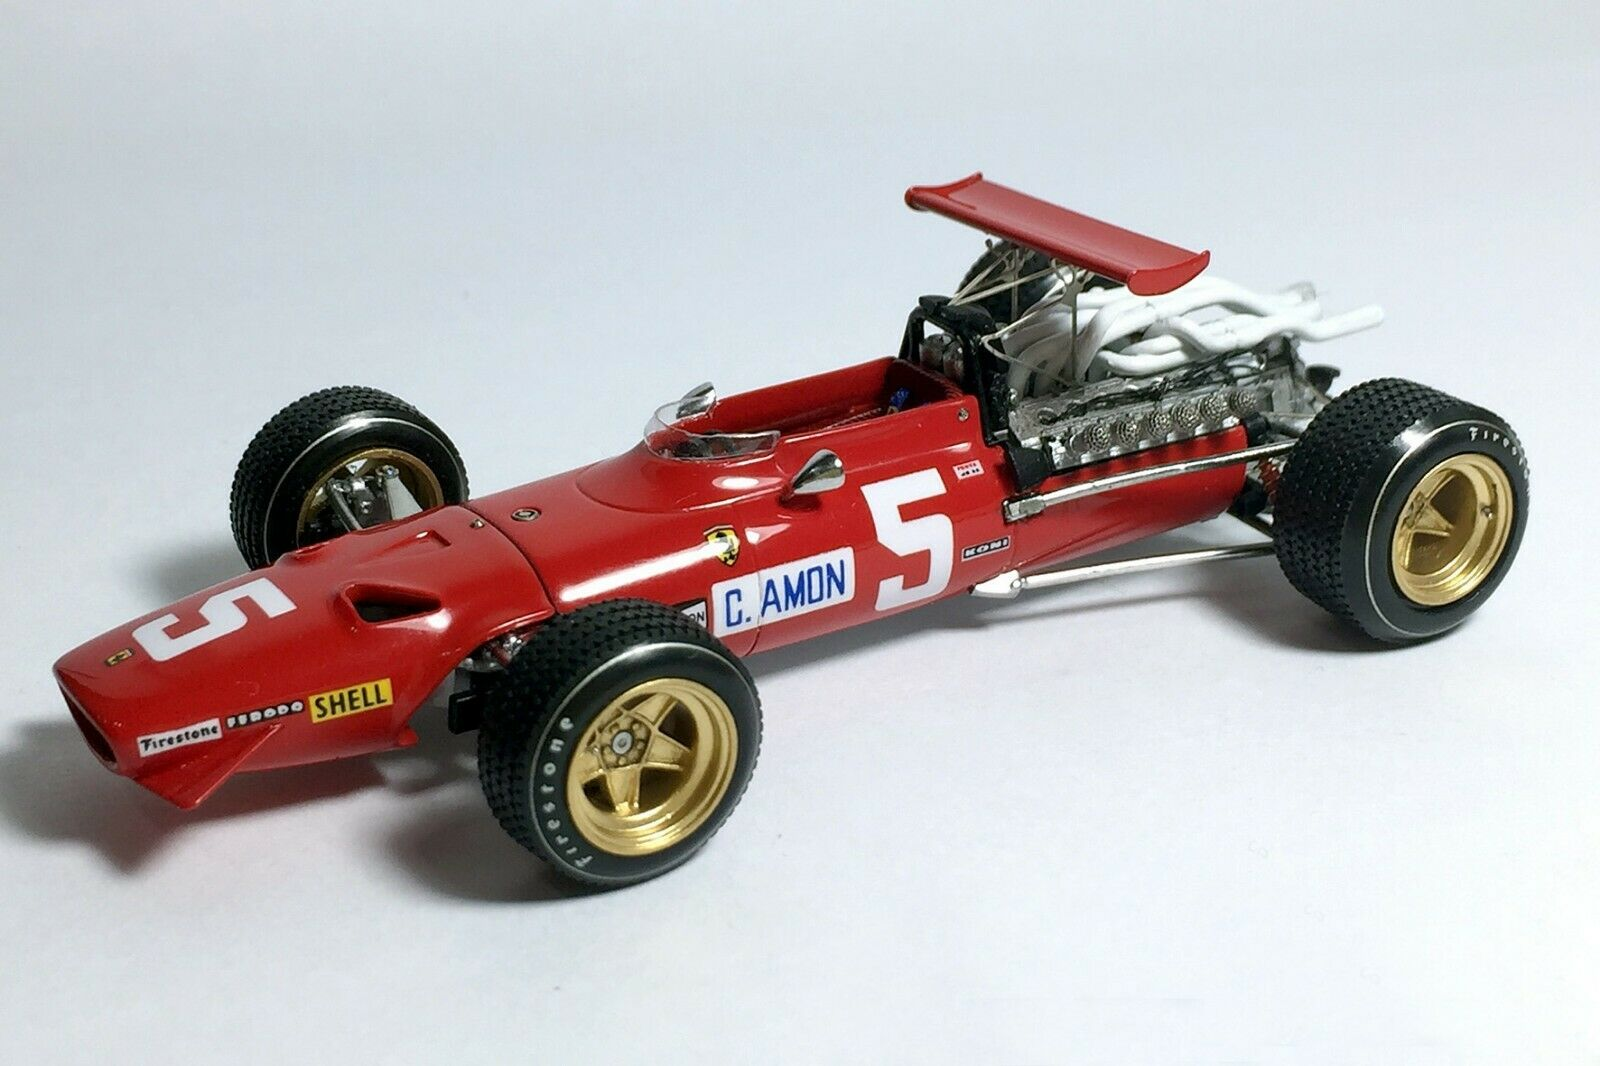 Tameo SLK 118 Ferrari 312 - White Metal Car Kit - Scale 1:43, RP-GB